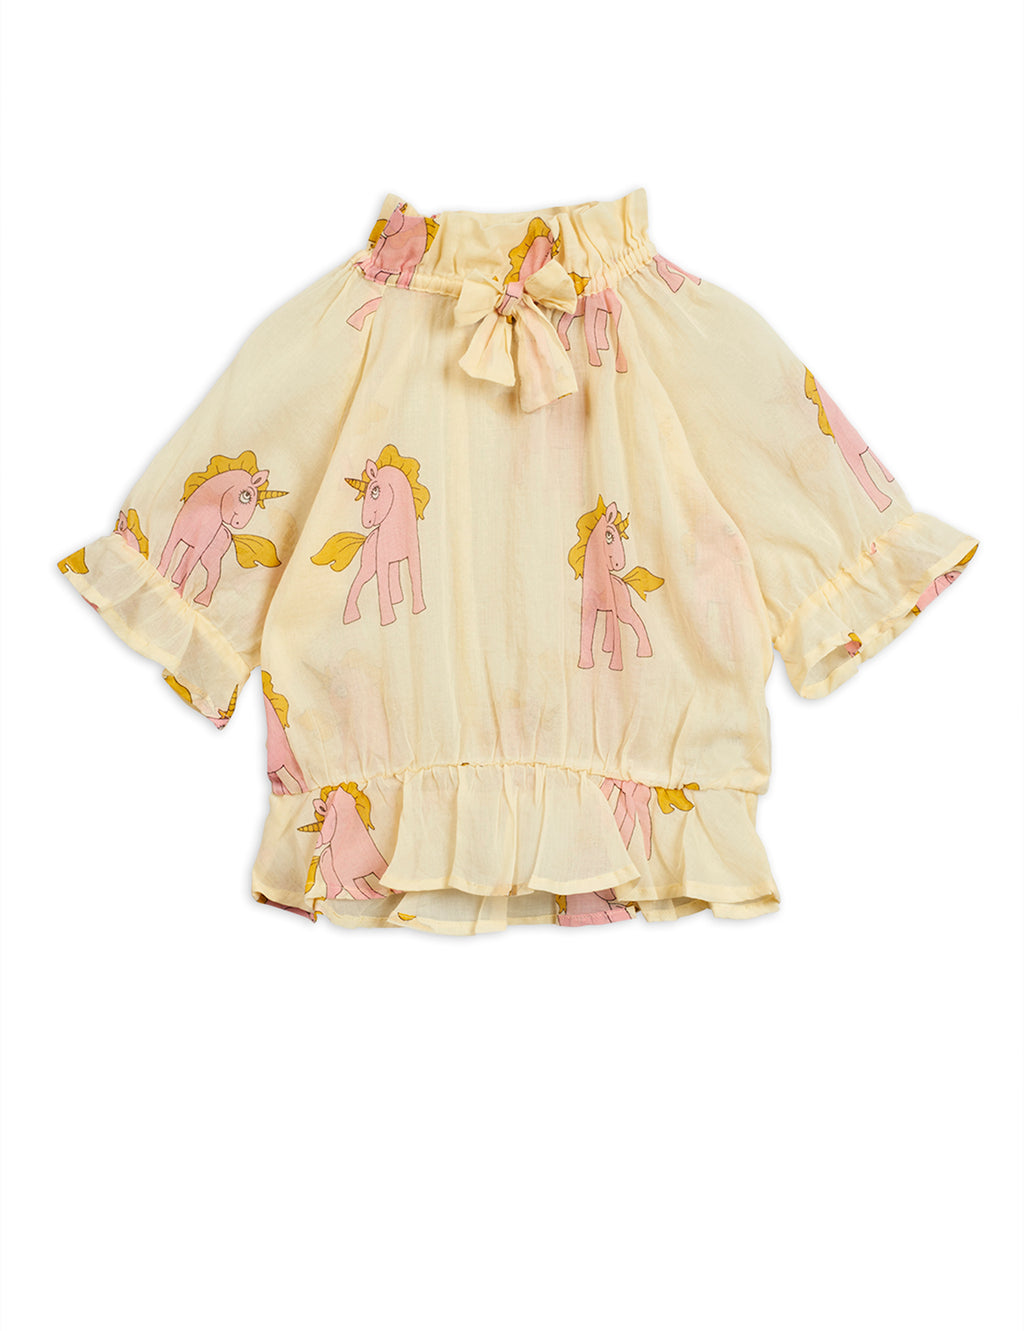 Yellow woven bow blouse with a magical pink unicorn print all-over.